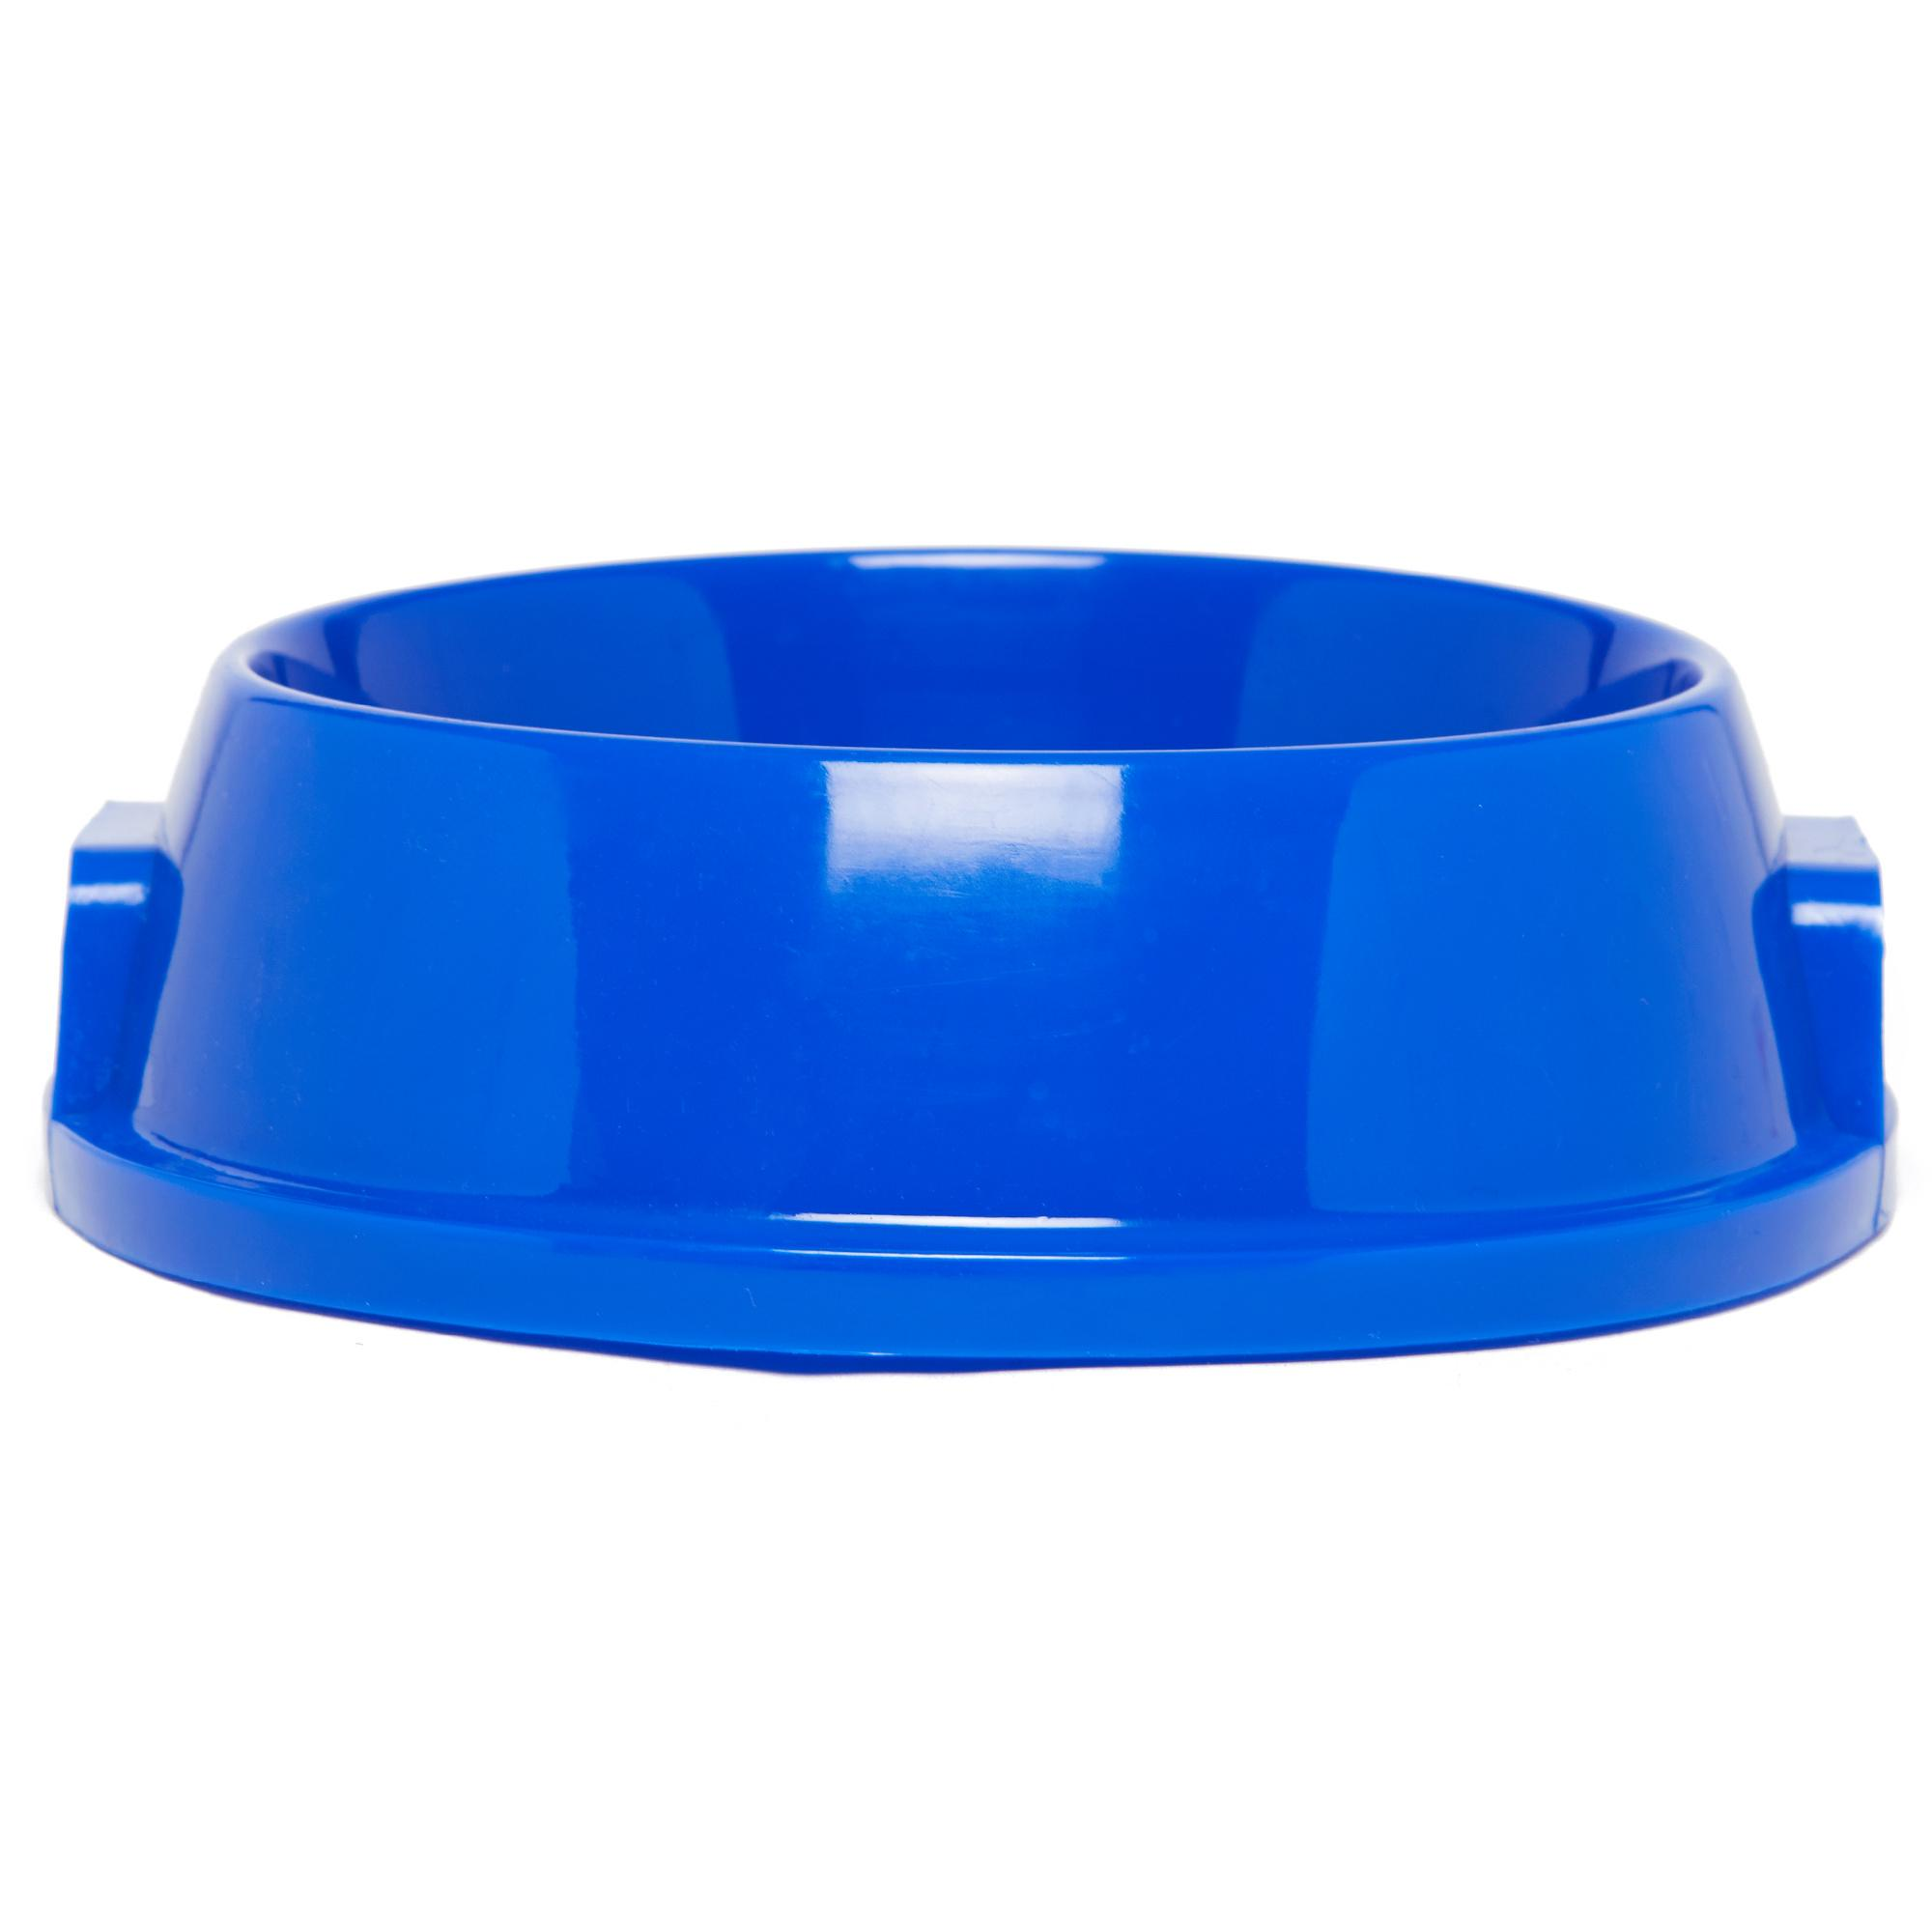 Image of Boyz Toys Deluxe Food Bowl, Blue